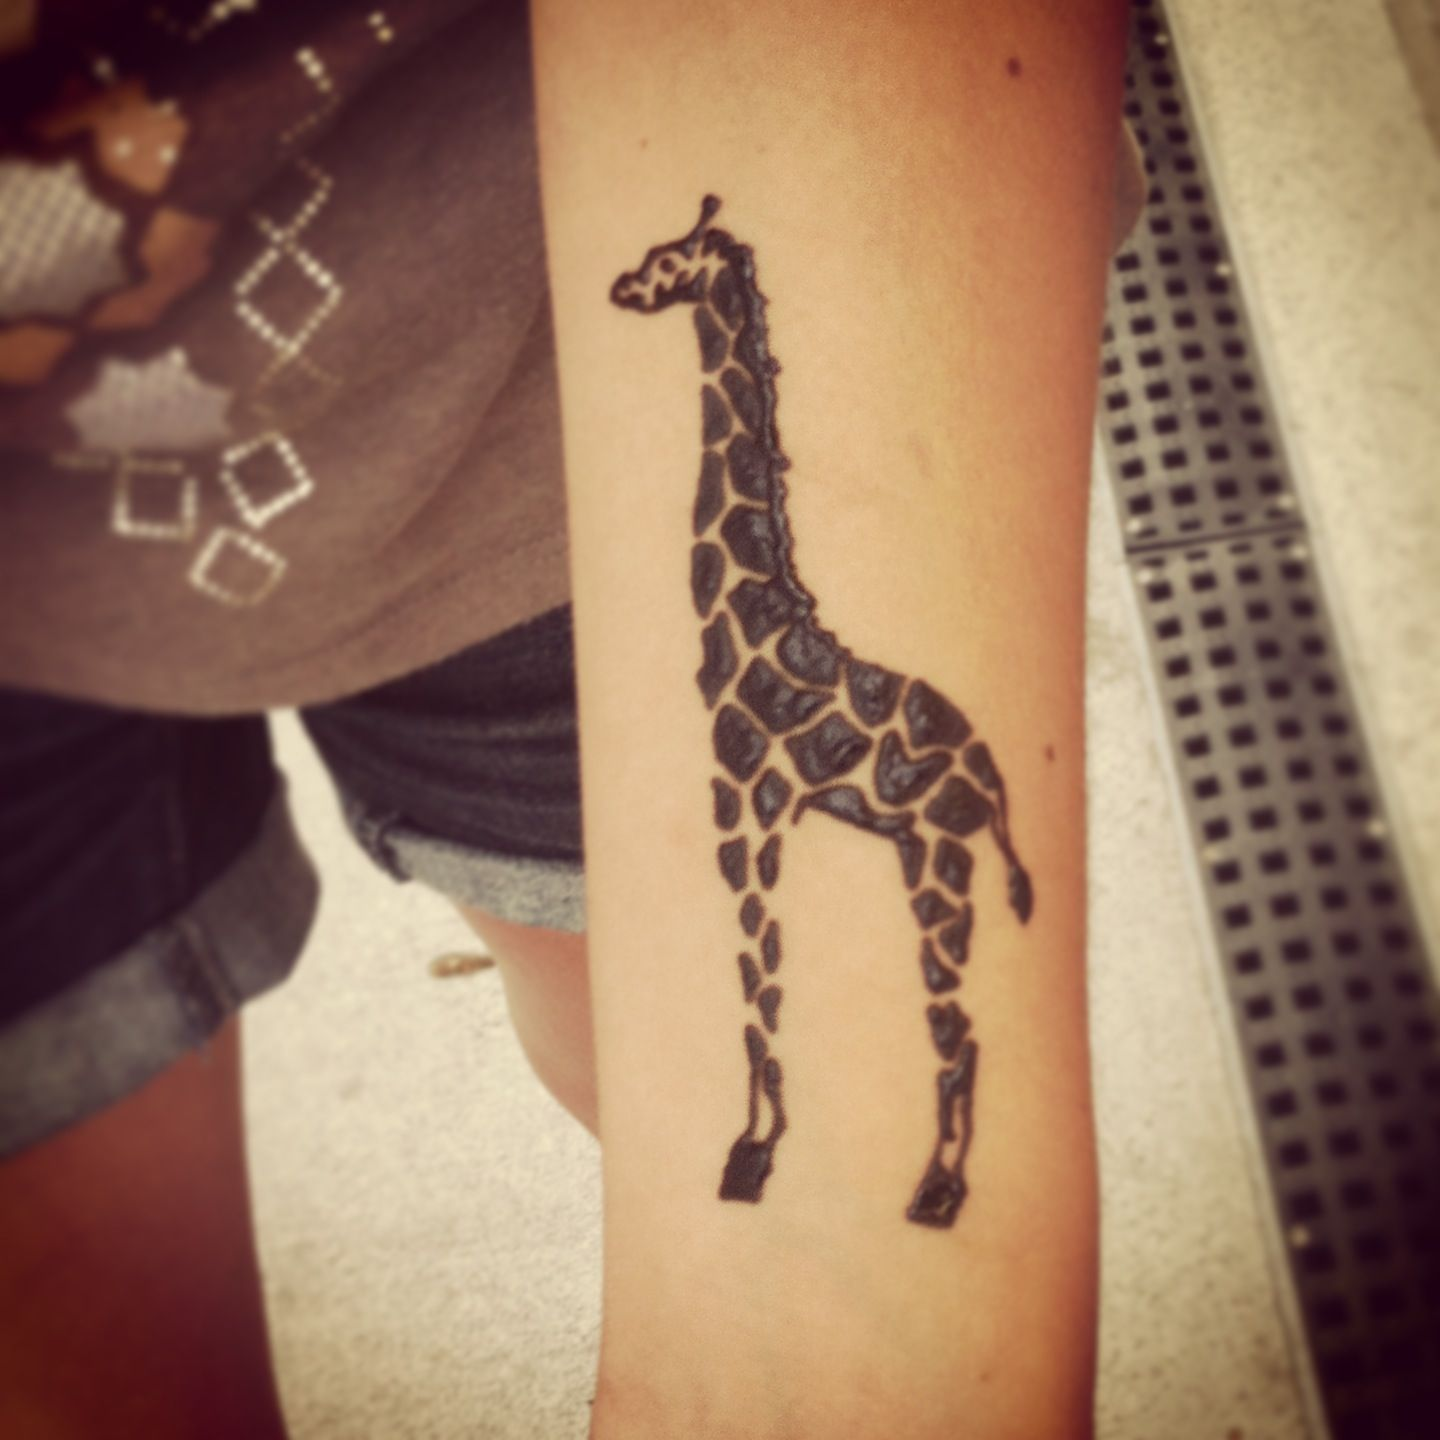 Simple Henna Wrist Designs For Beginners: My Giraffe Henna Tattoo On Wrist...I Love It! #tattoo